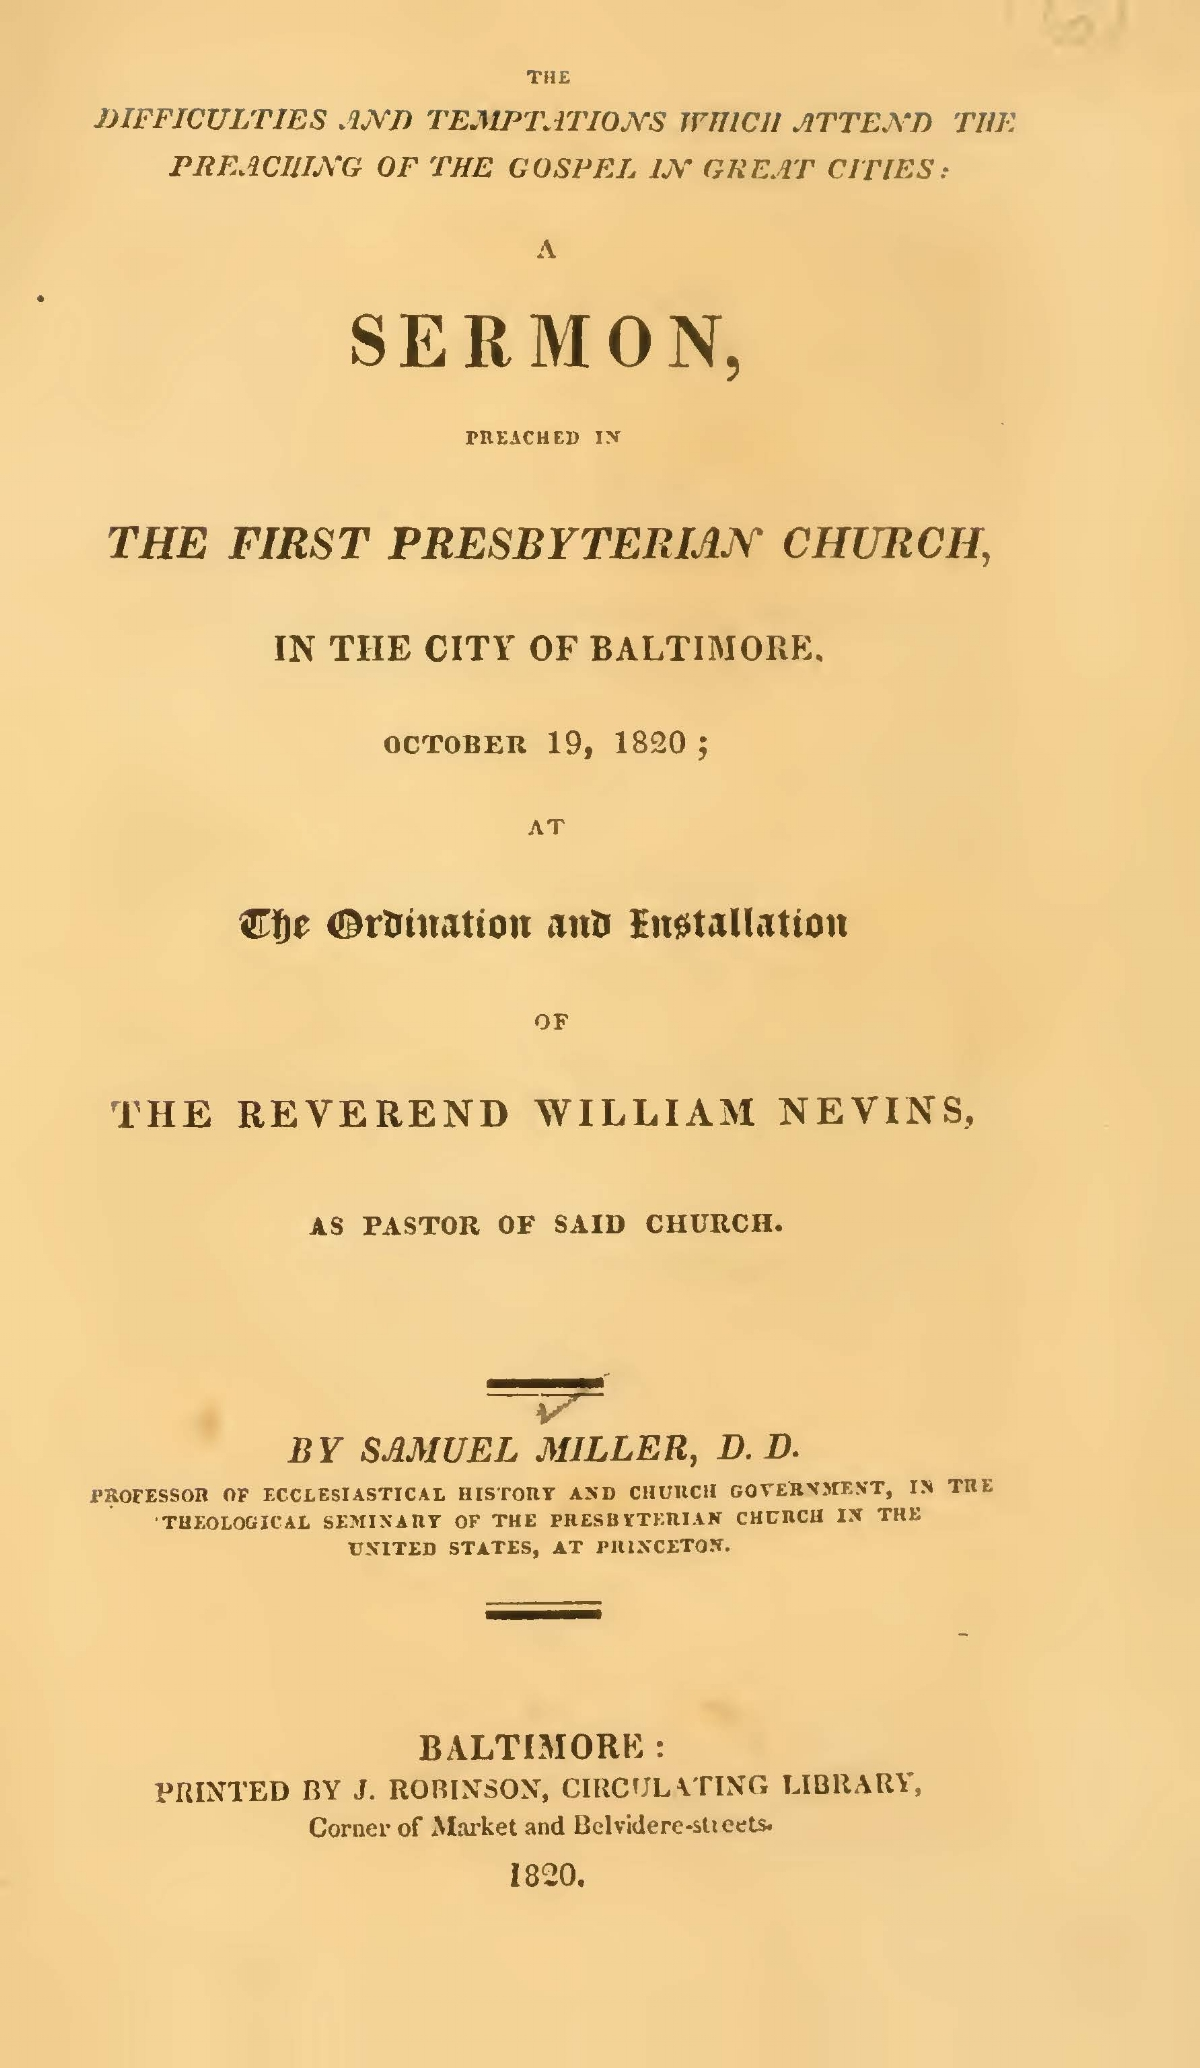 Miller, Samuel, The Difficulties and Temptations Which Attend the Preaching of the Gospel in Great Cities Title Page.jpg